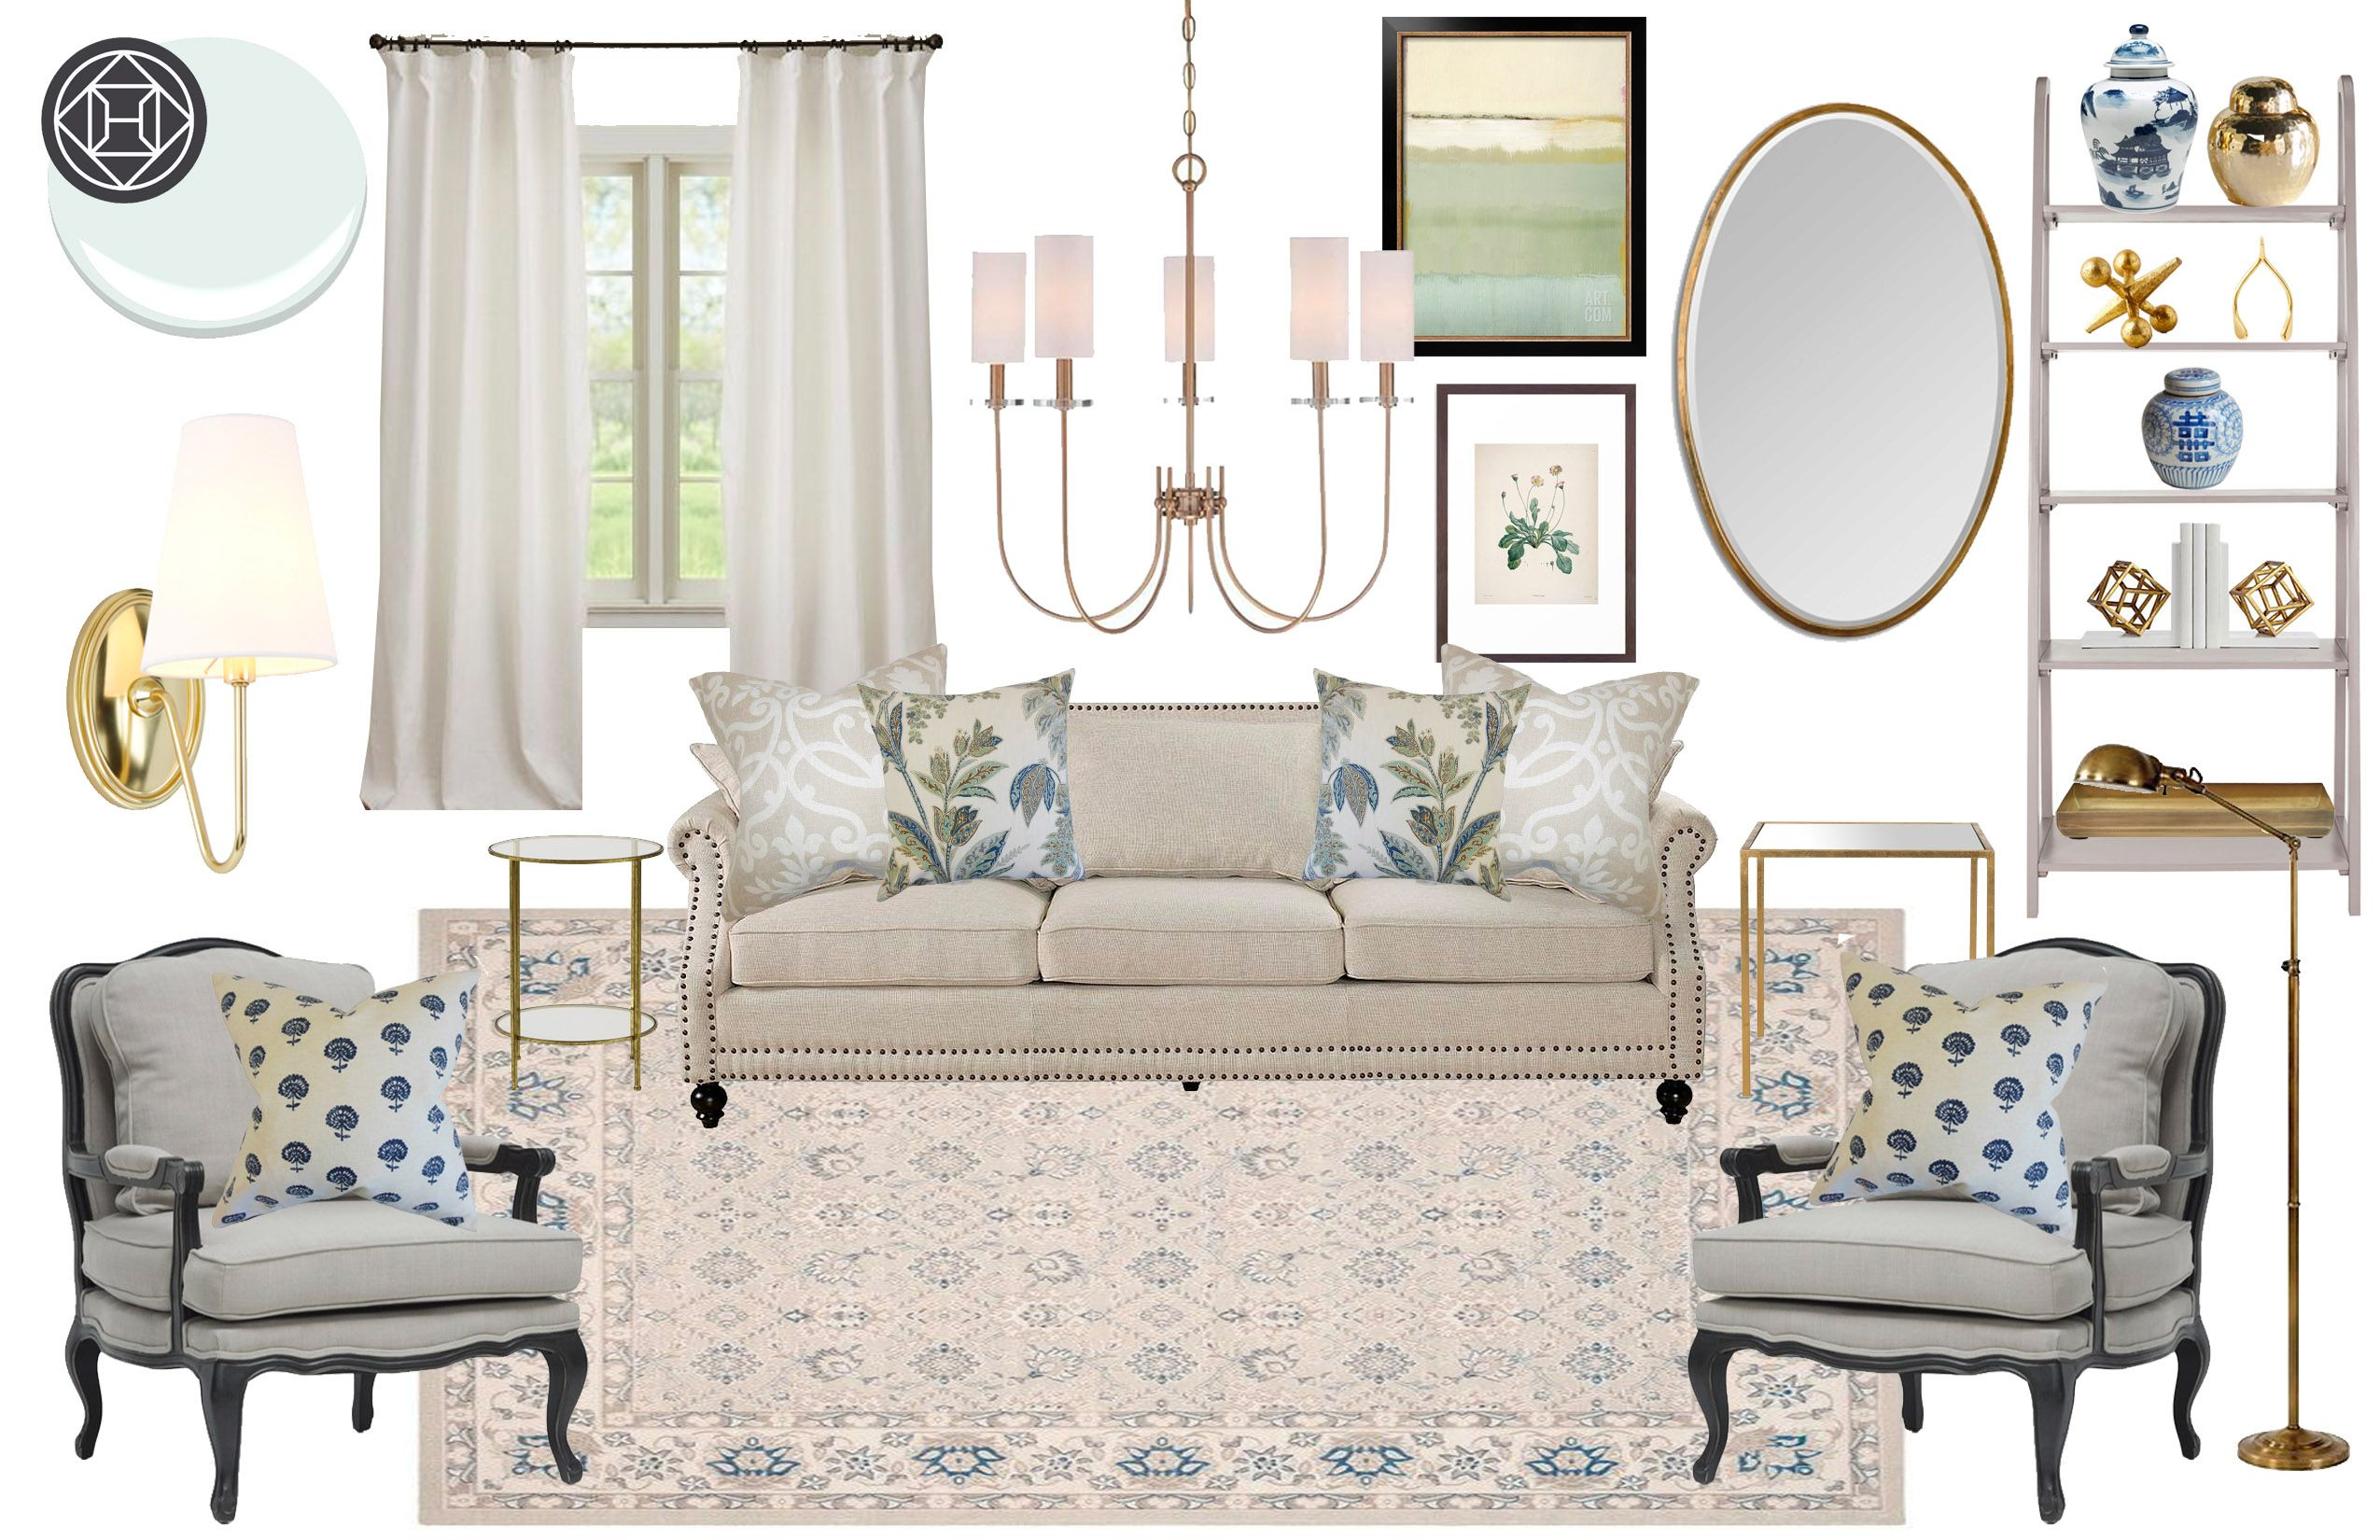 Living Room Design By Havenly Interior